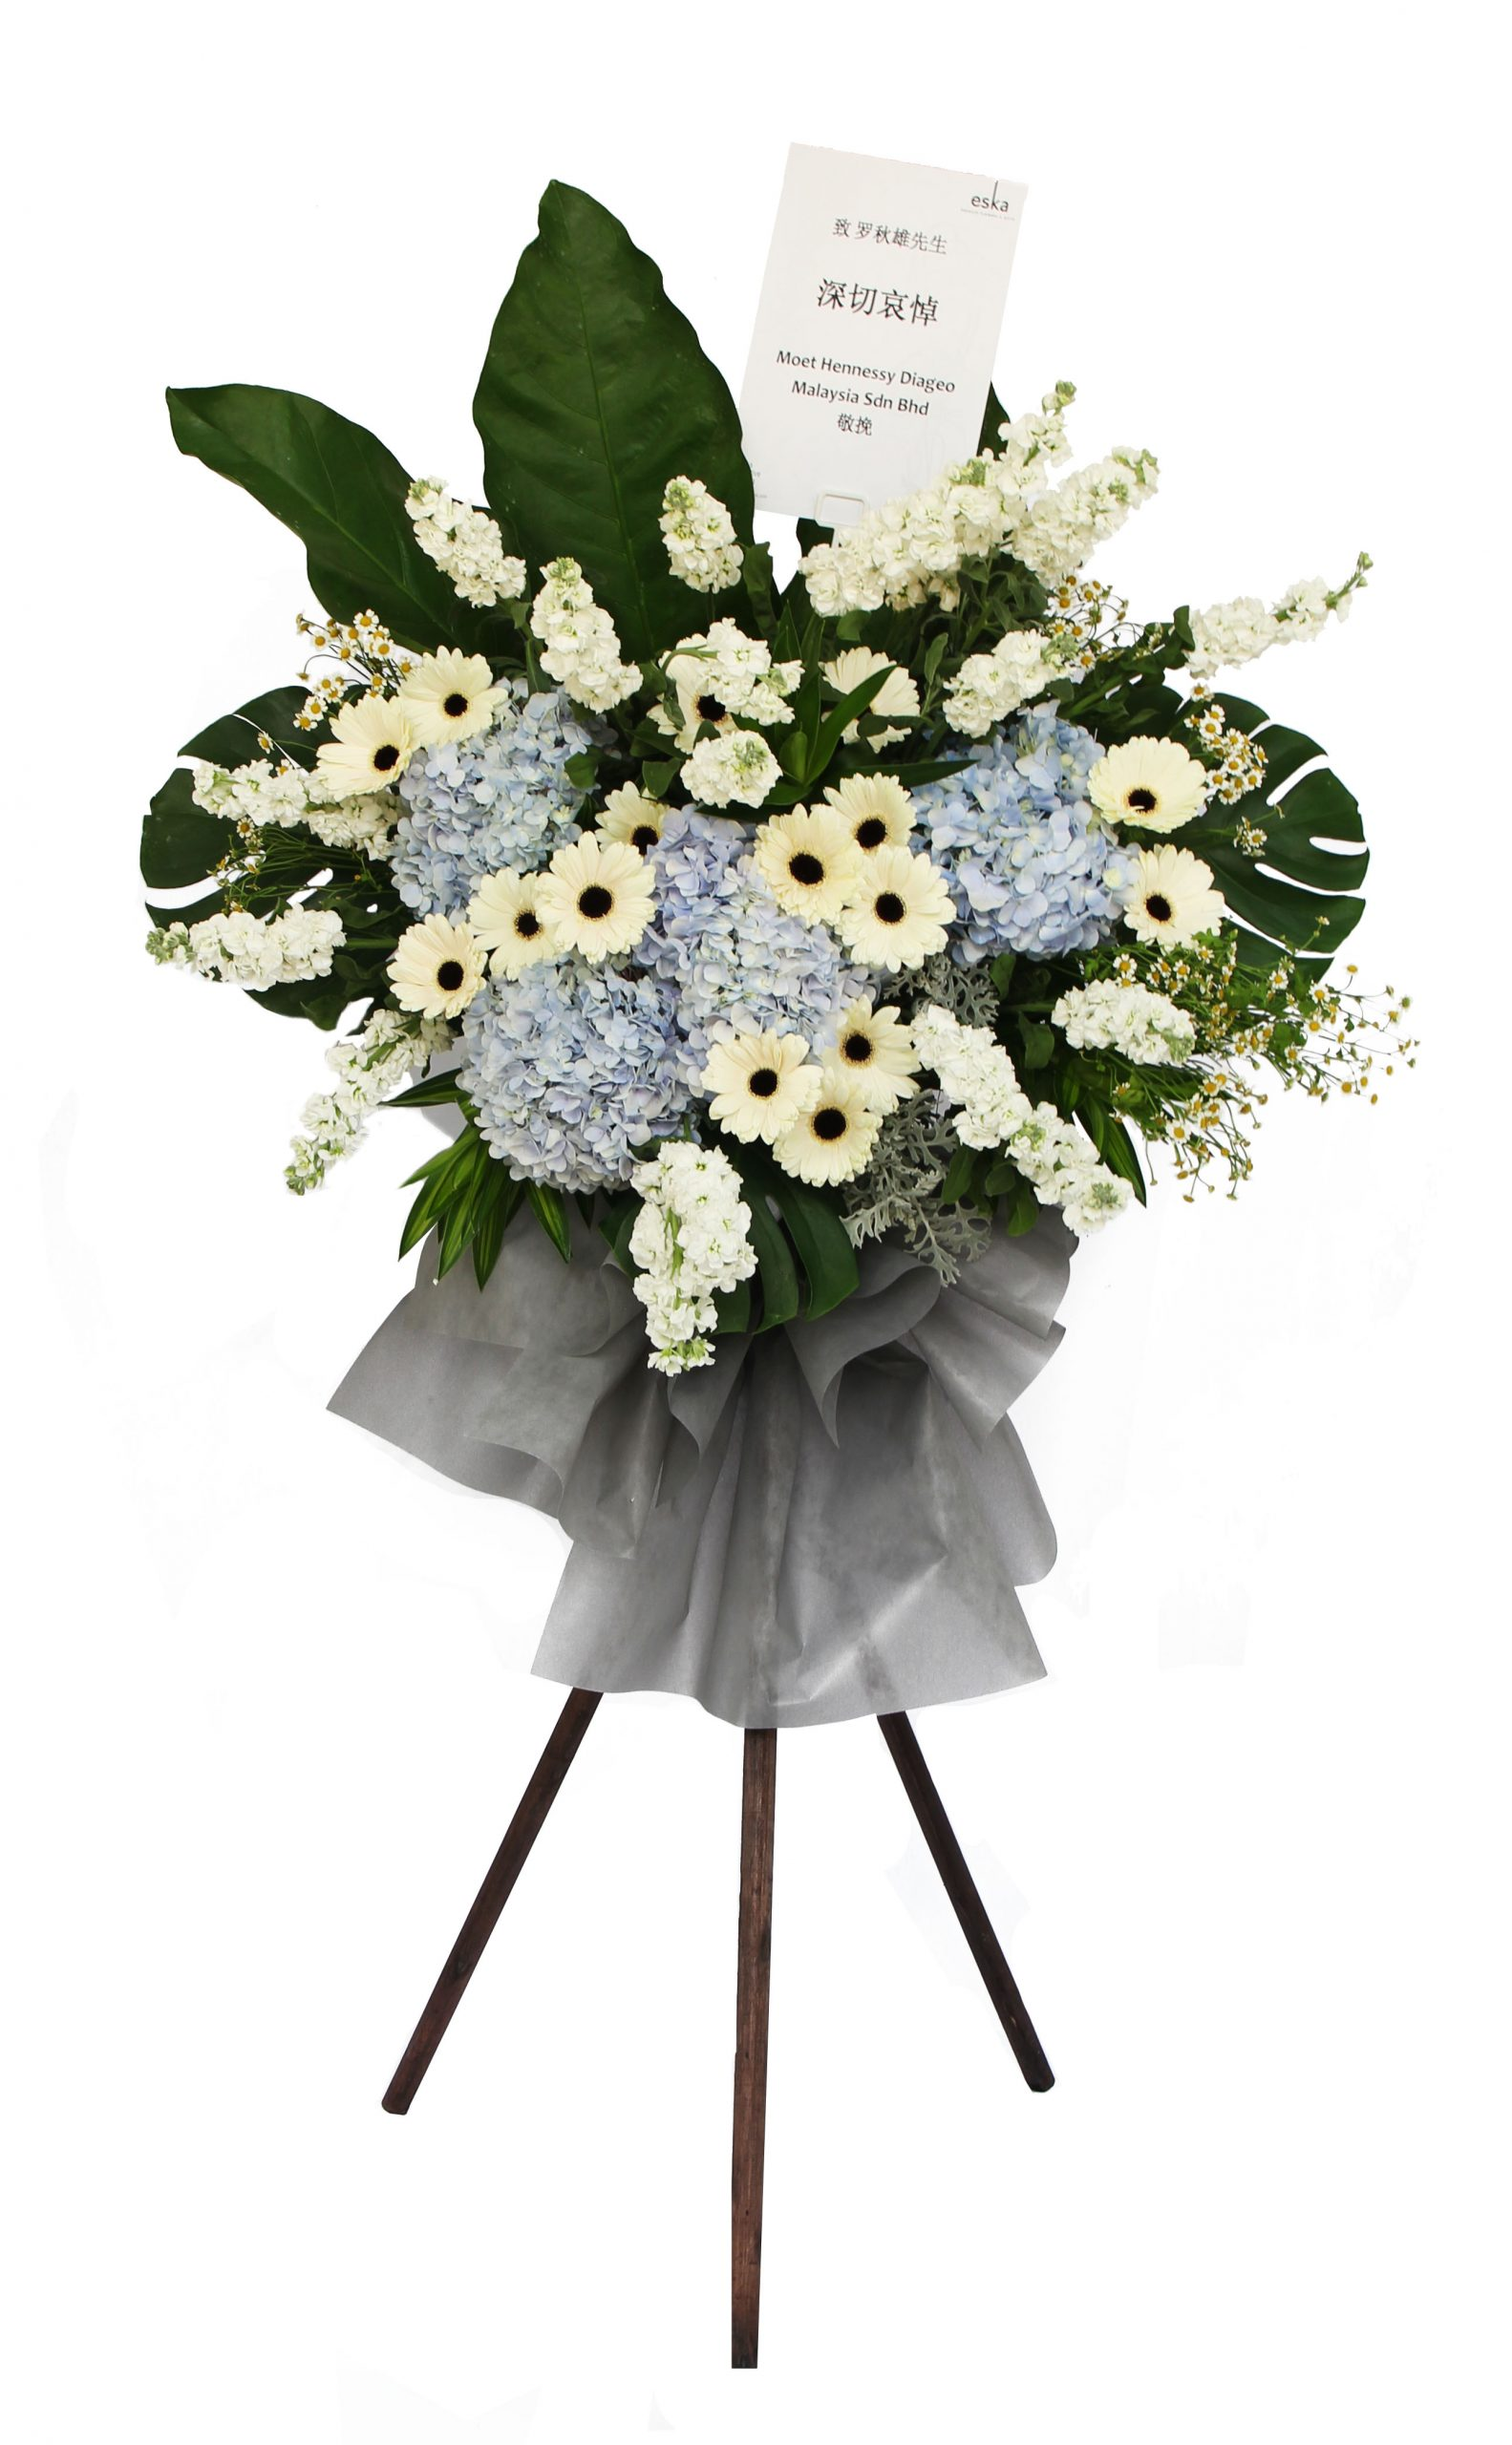 Hope & Serenity Funeral Flower Stand | Condolence Flower | Eska Creative Gifting